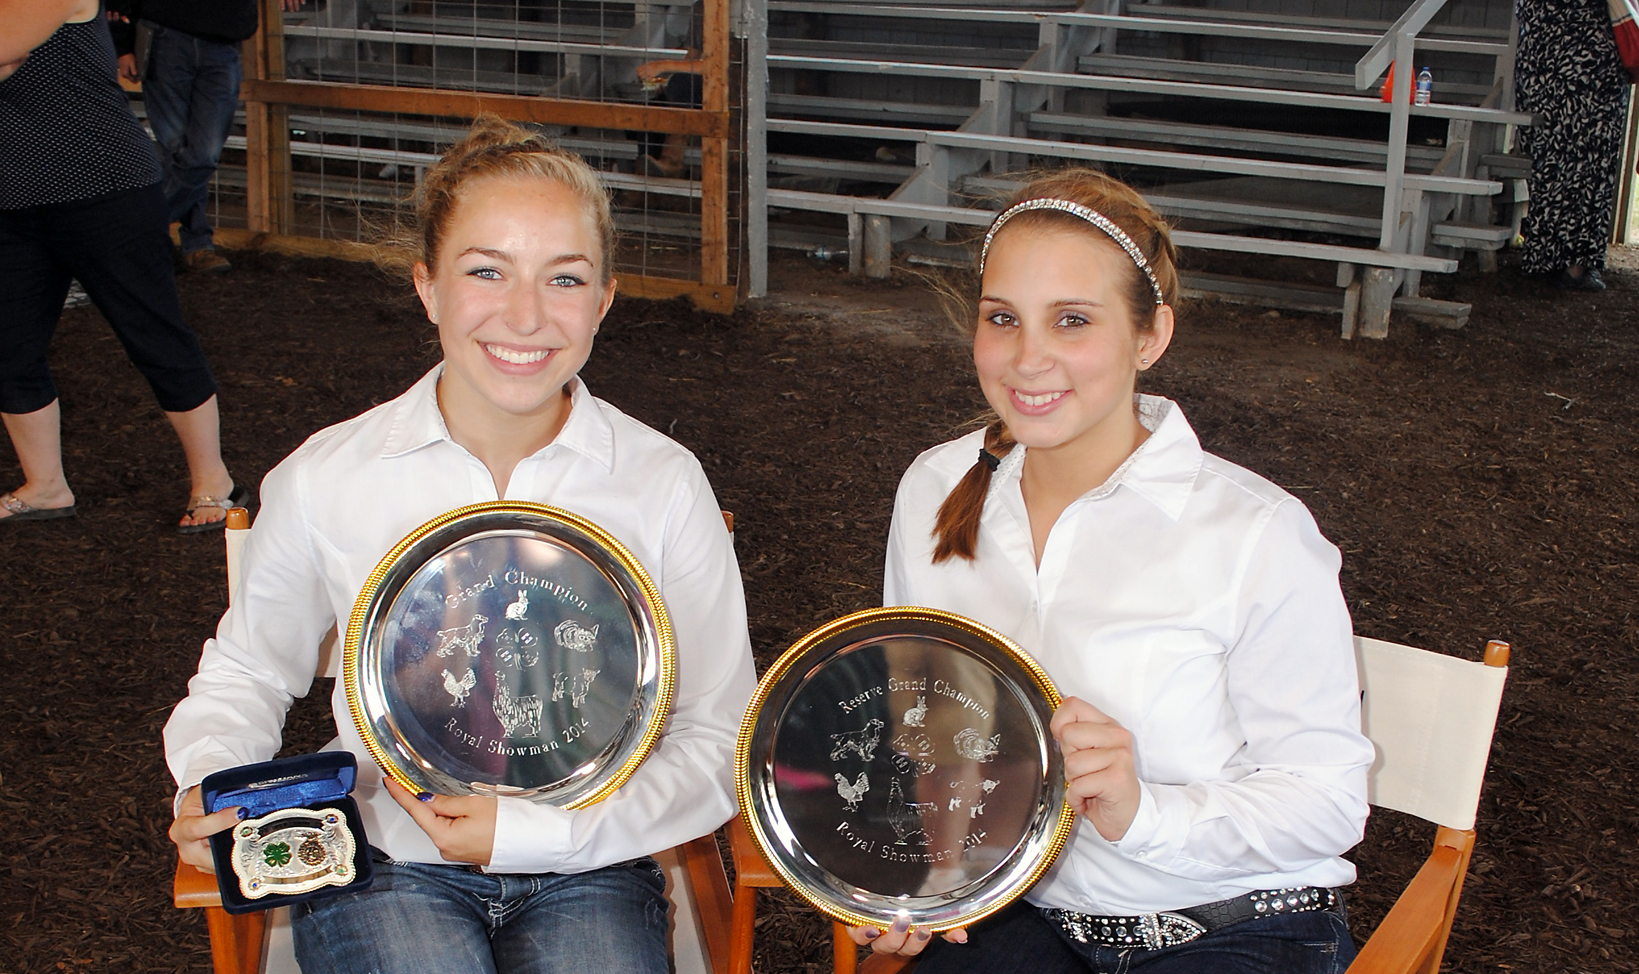 From left: Hannah Allaben of Fishers and Victoria Comin of Noblesville won champion and reserve champion respectively in the annual Royal Showmanship contest on July 21. (Photo by Robert Herrington)